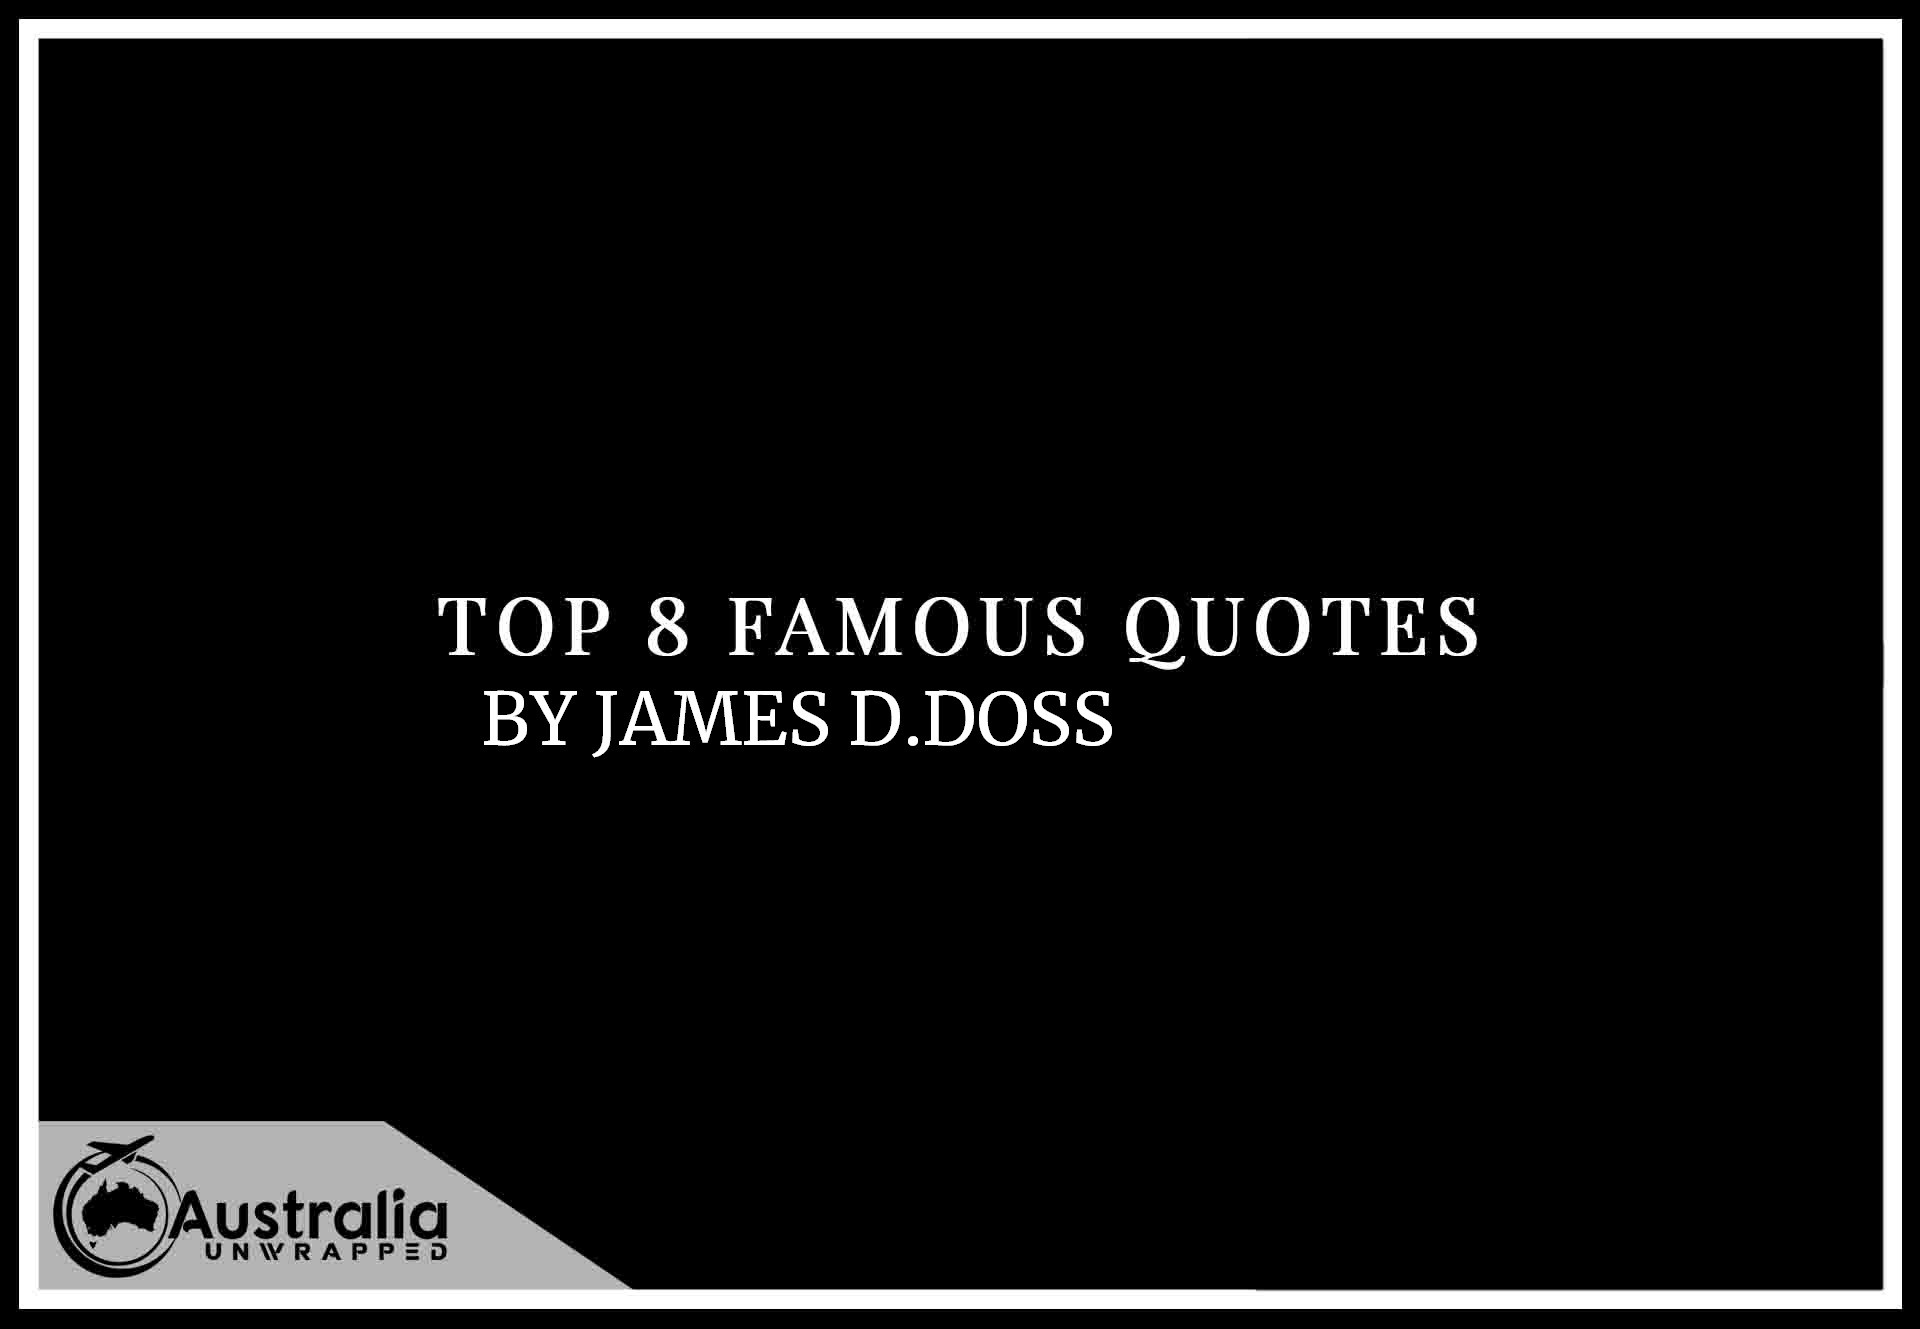 Top 8 Famous Quotes by Author James D. Doss